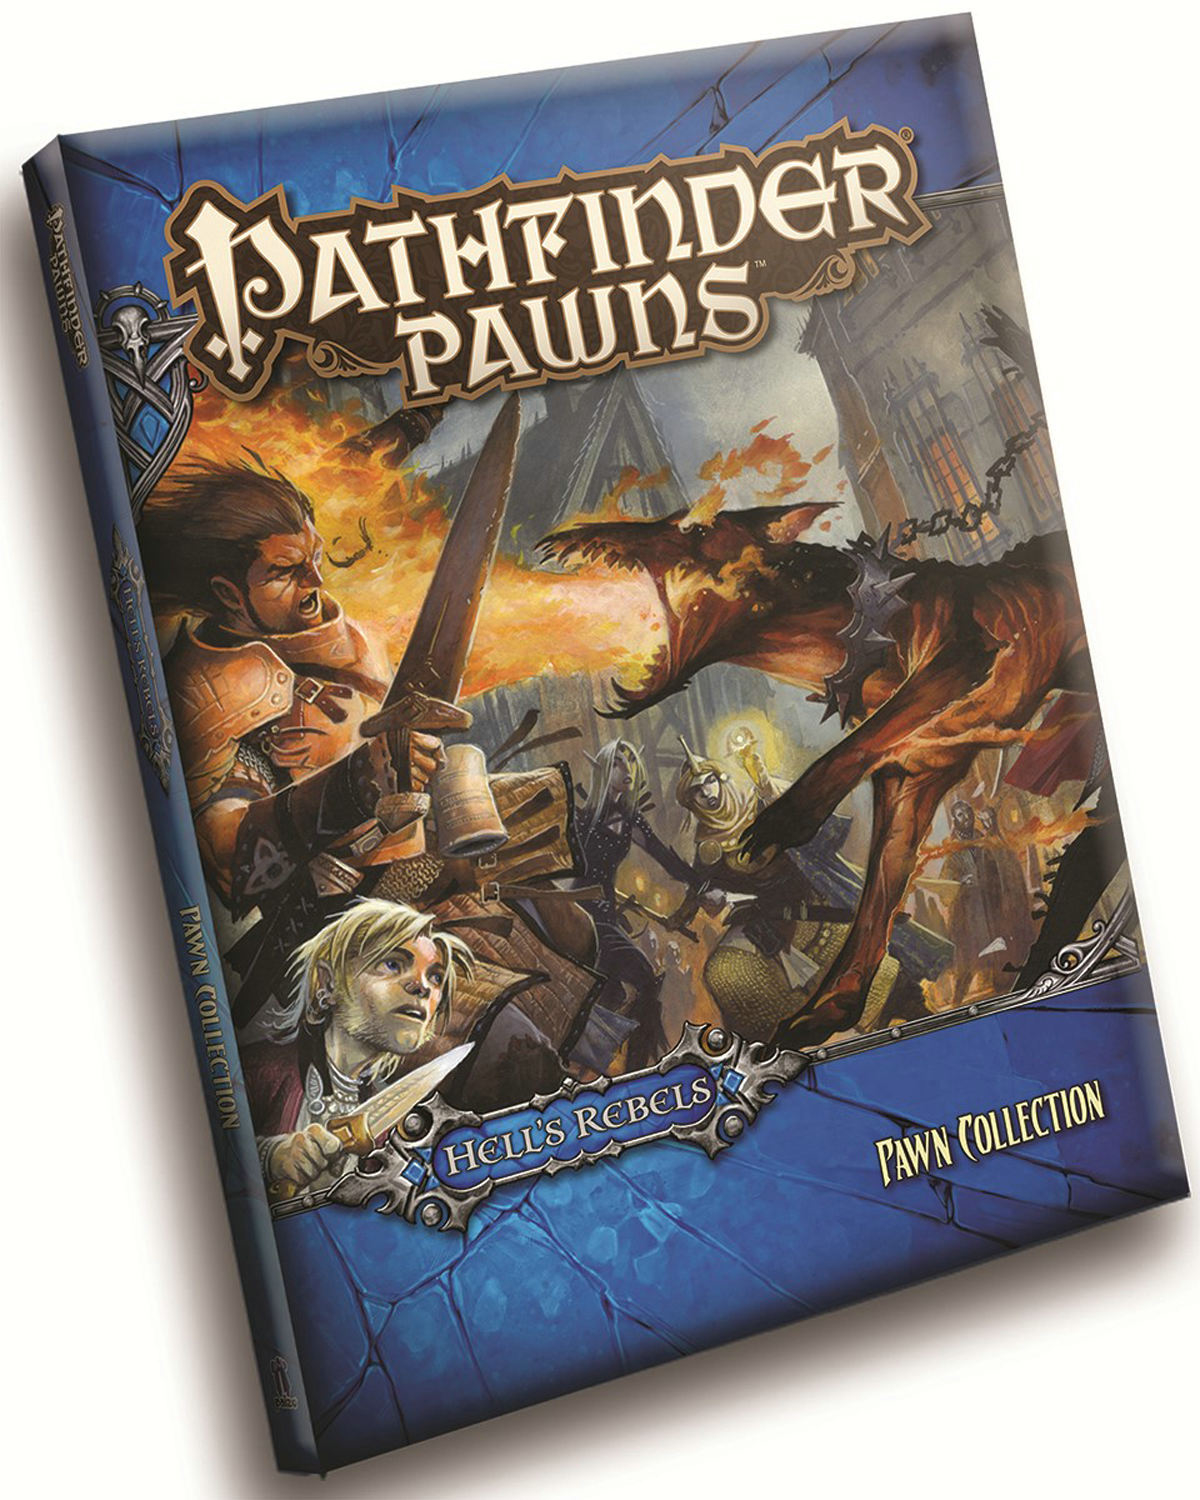 PATHFINDER HELLS REBELS ADVENTURE PATH PAWN COLL